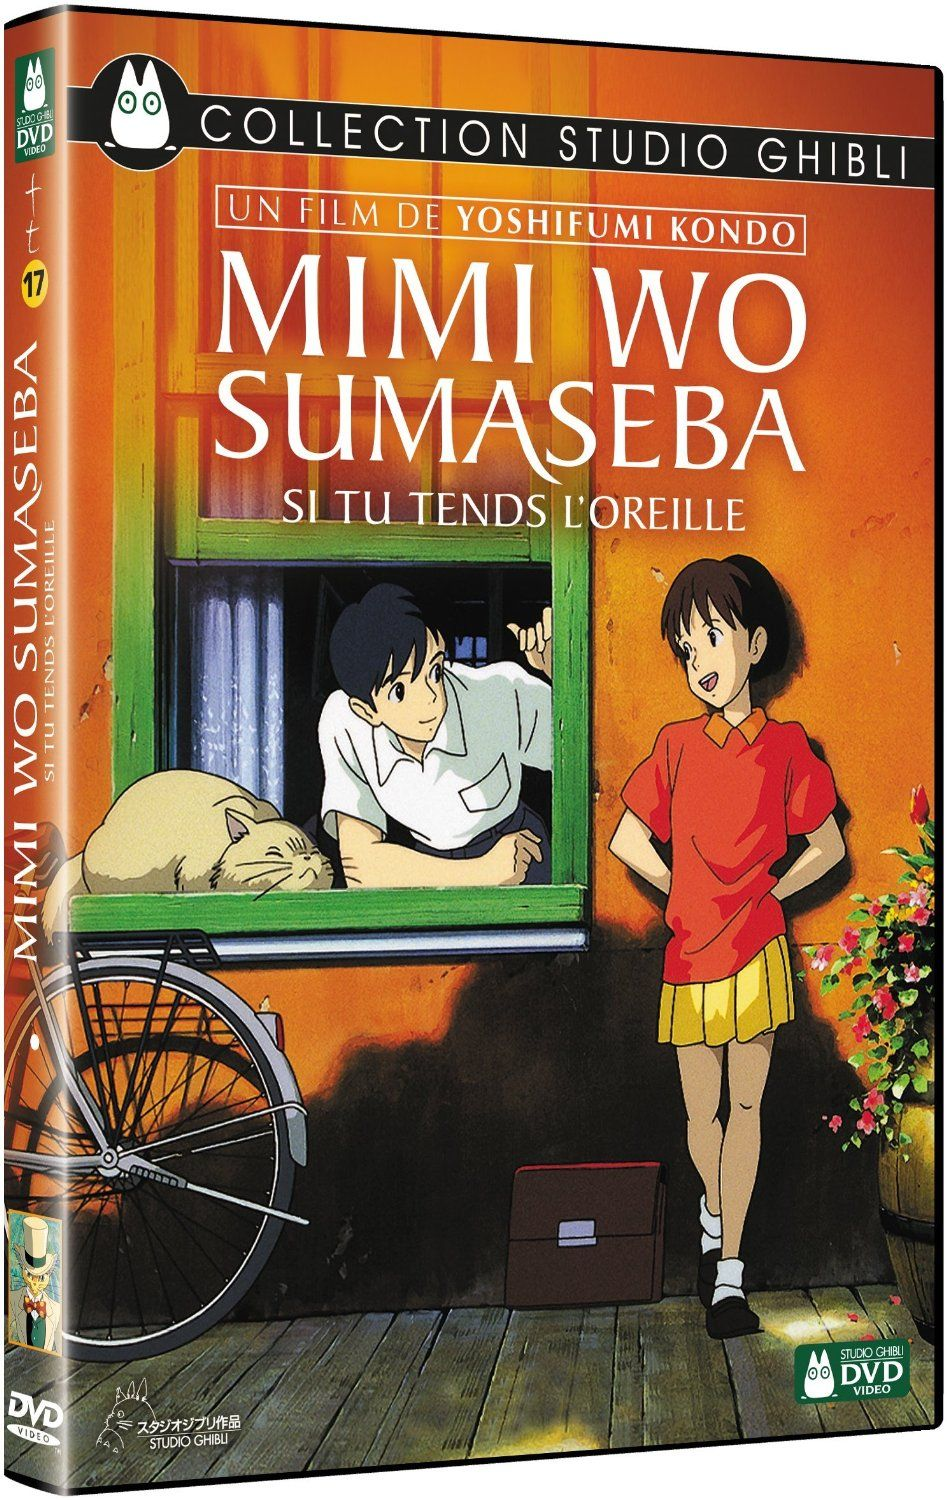 DVD Si tu tends l'oreille Mimi wo sumaseba Anime Dvd